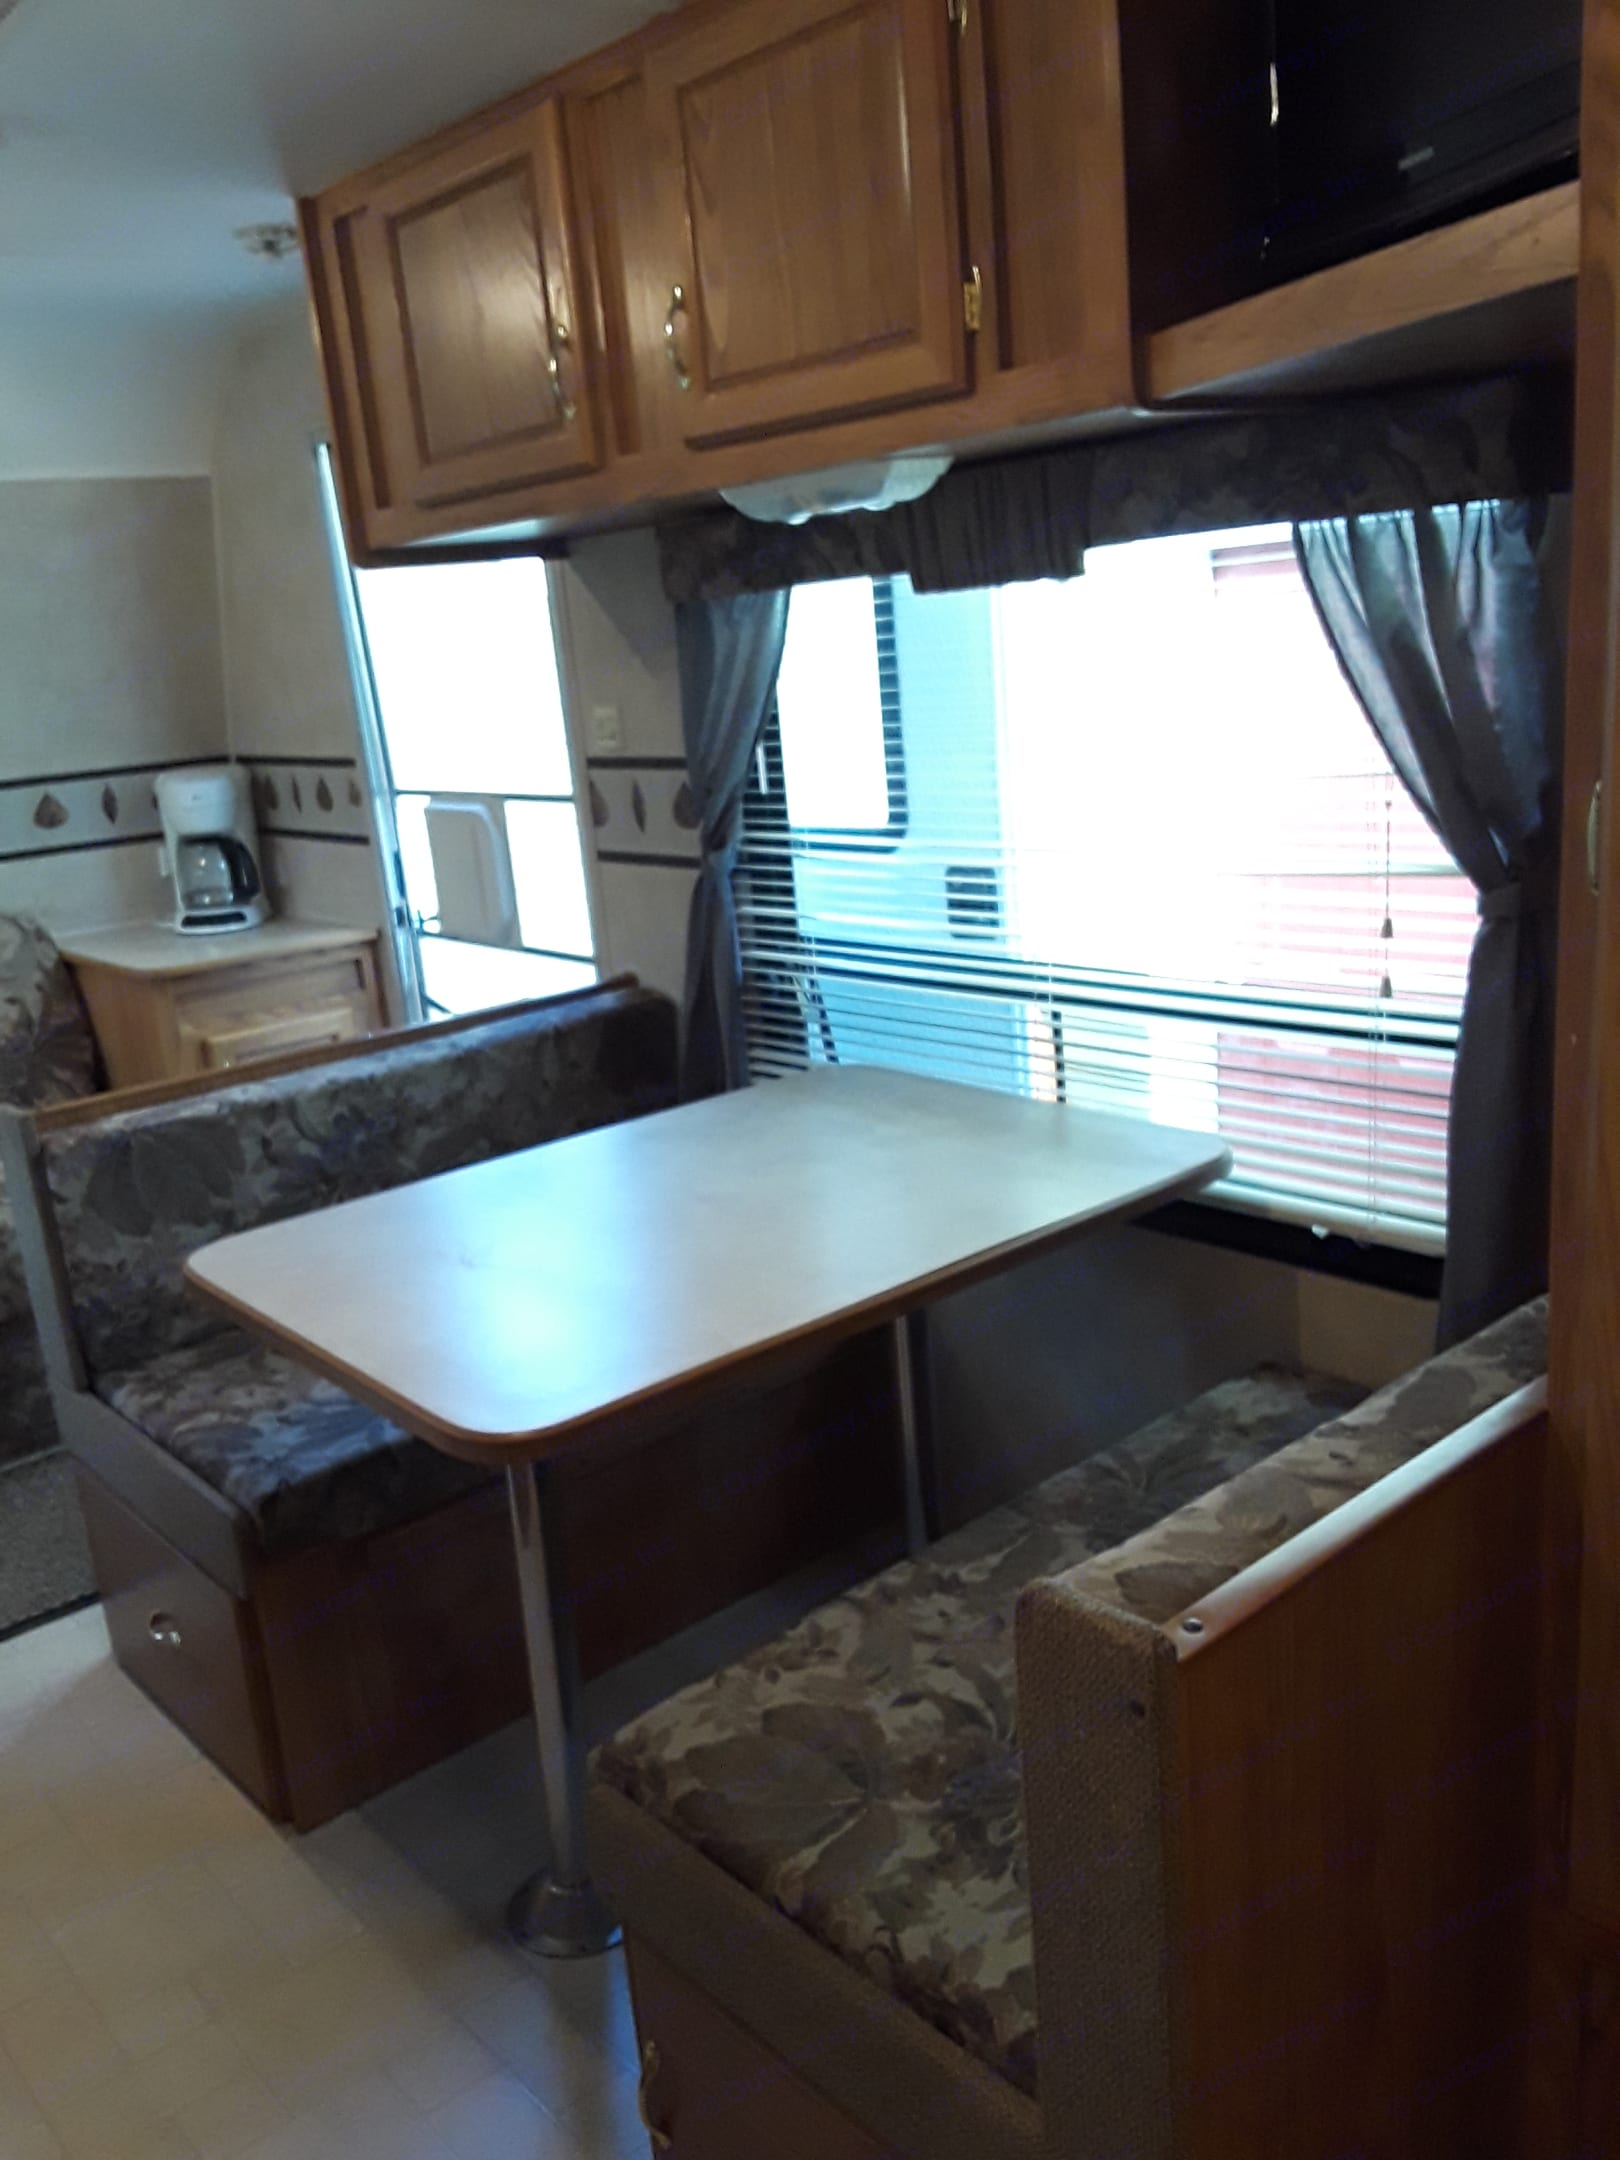 Dinette easily folds down into a bed. TV and storage space. Great natural light. . Fleetwood Pioneer 2004